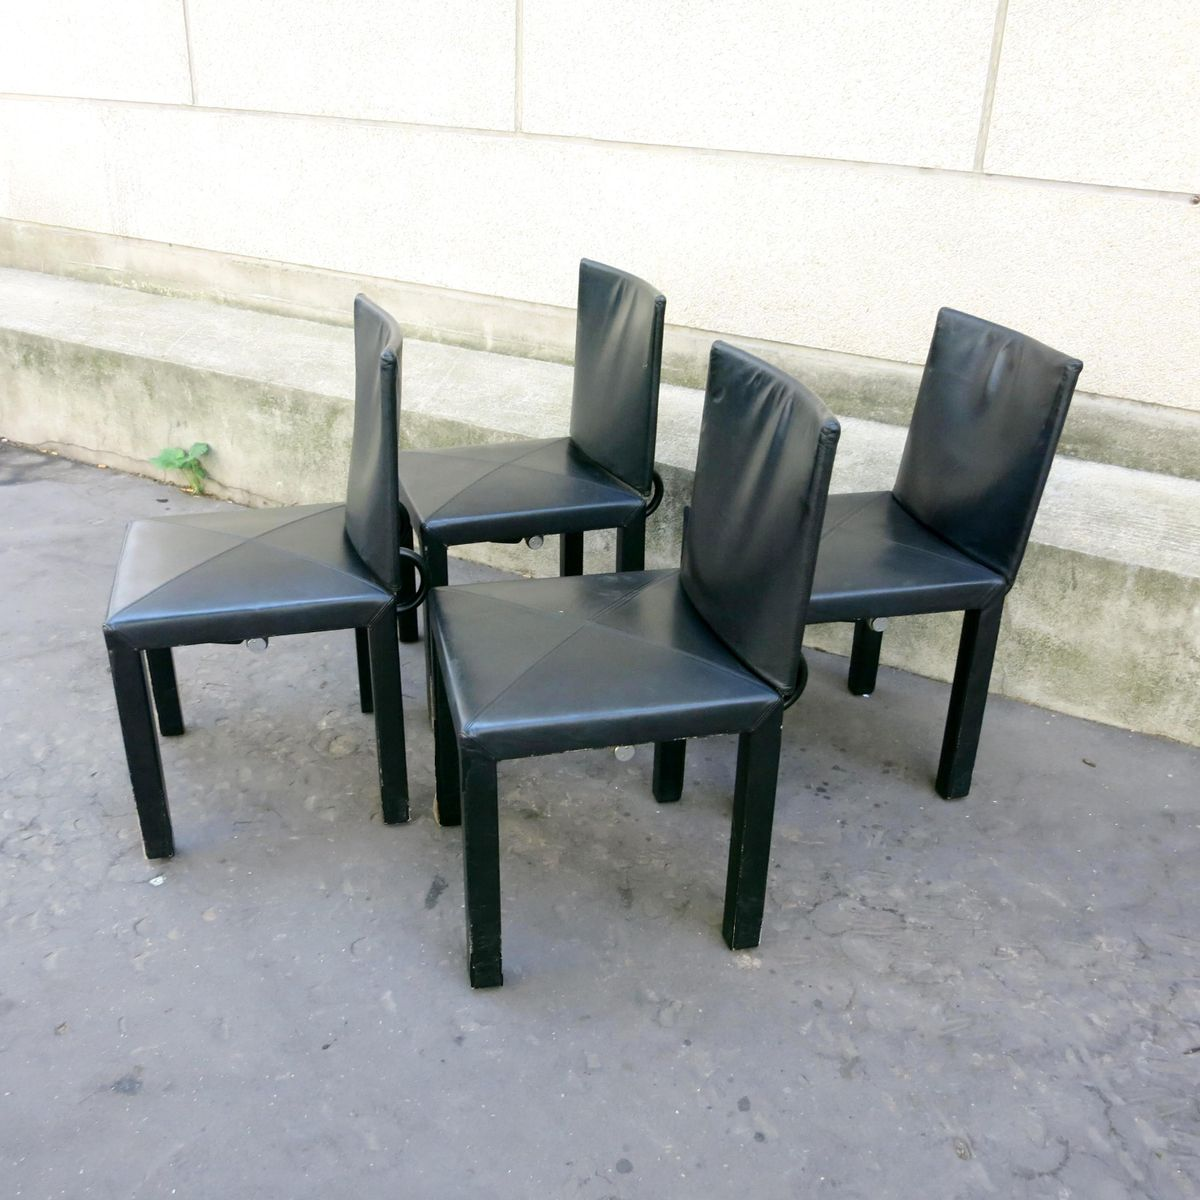 Arcadia dining chairs by paolo piva for b b italia 1980s for 1980s chair